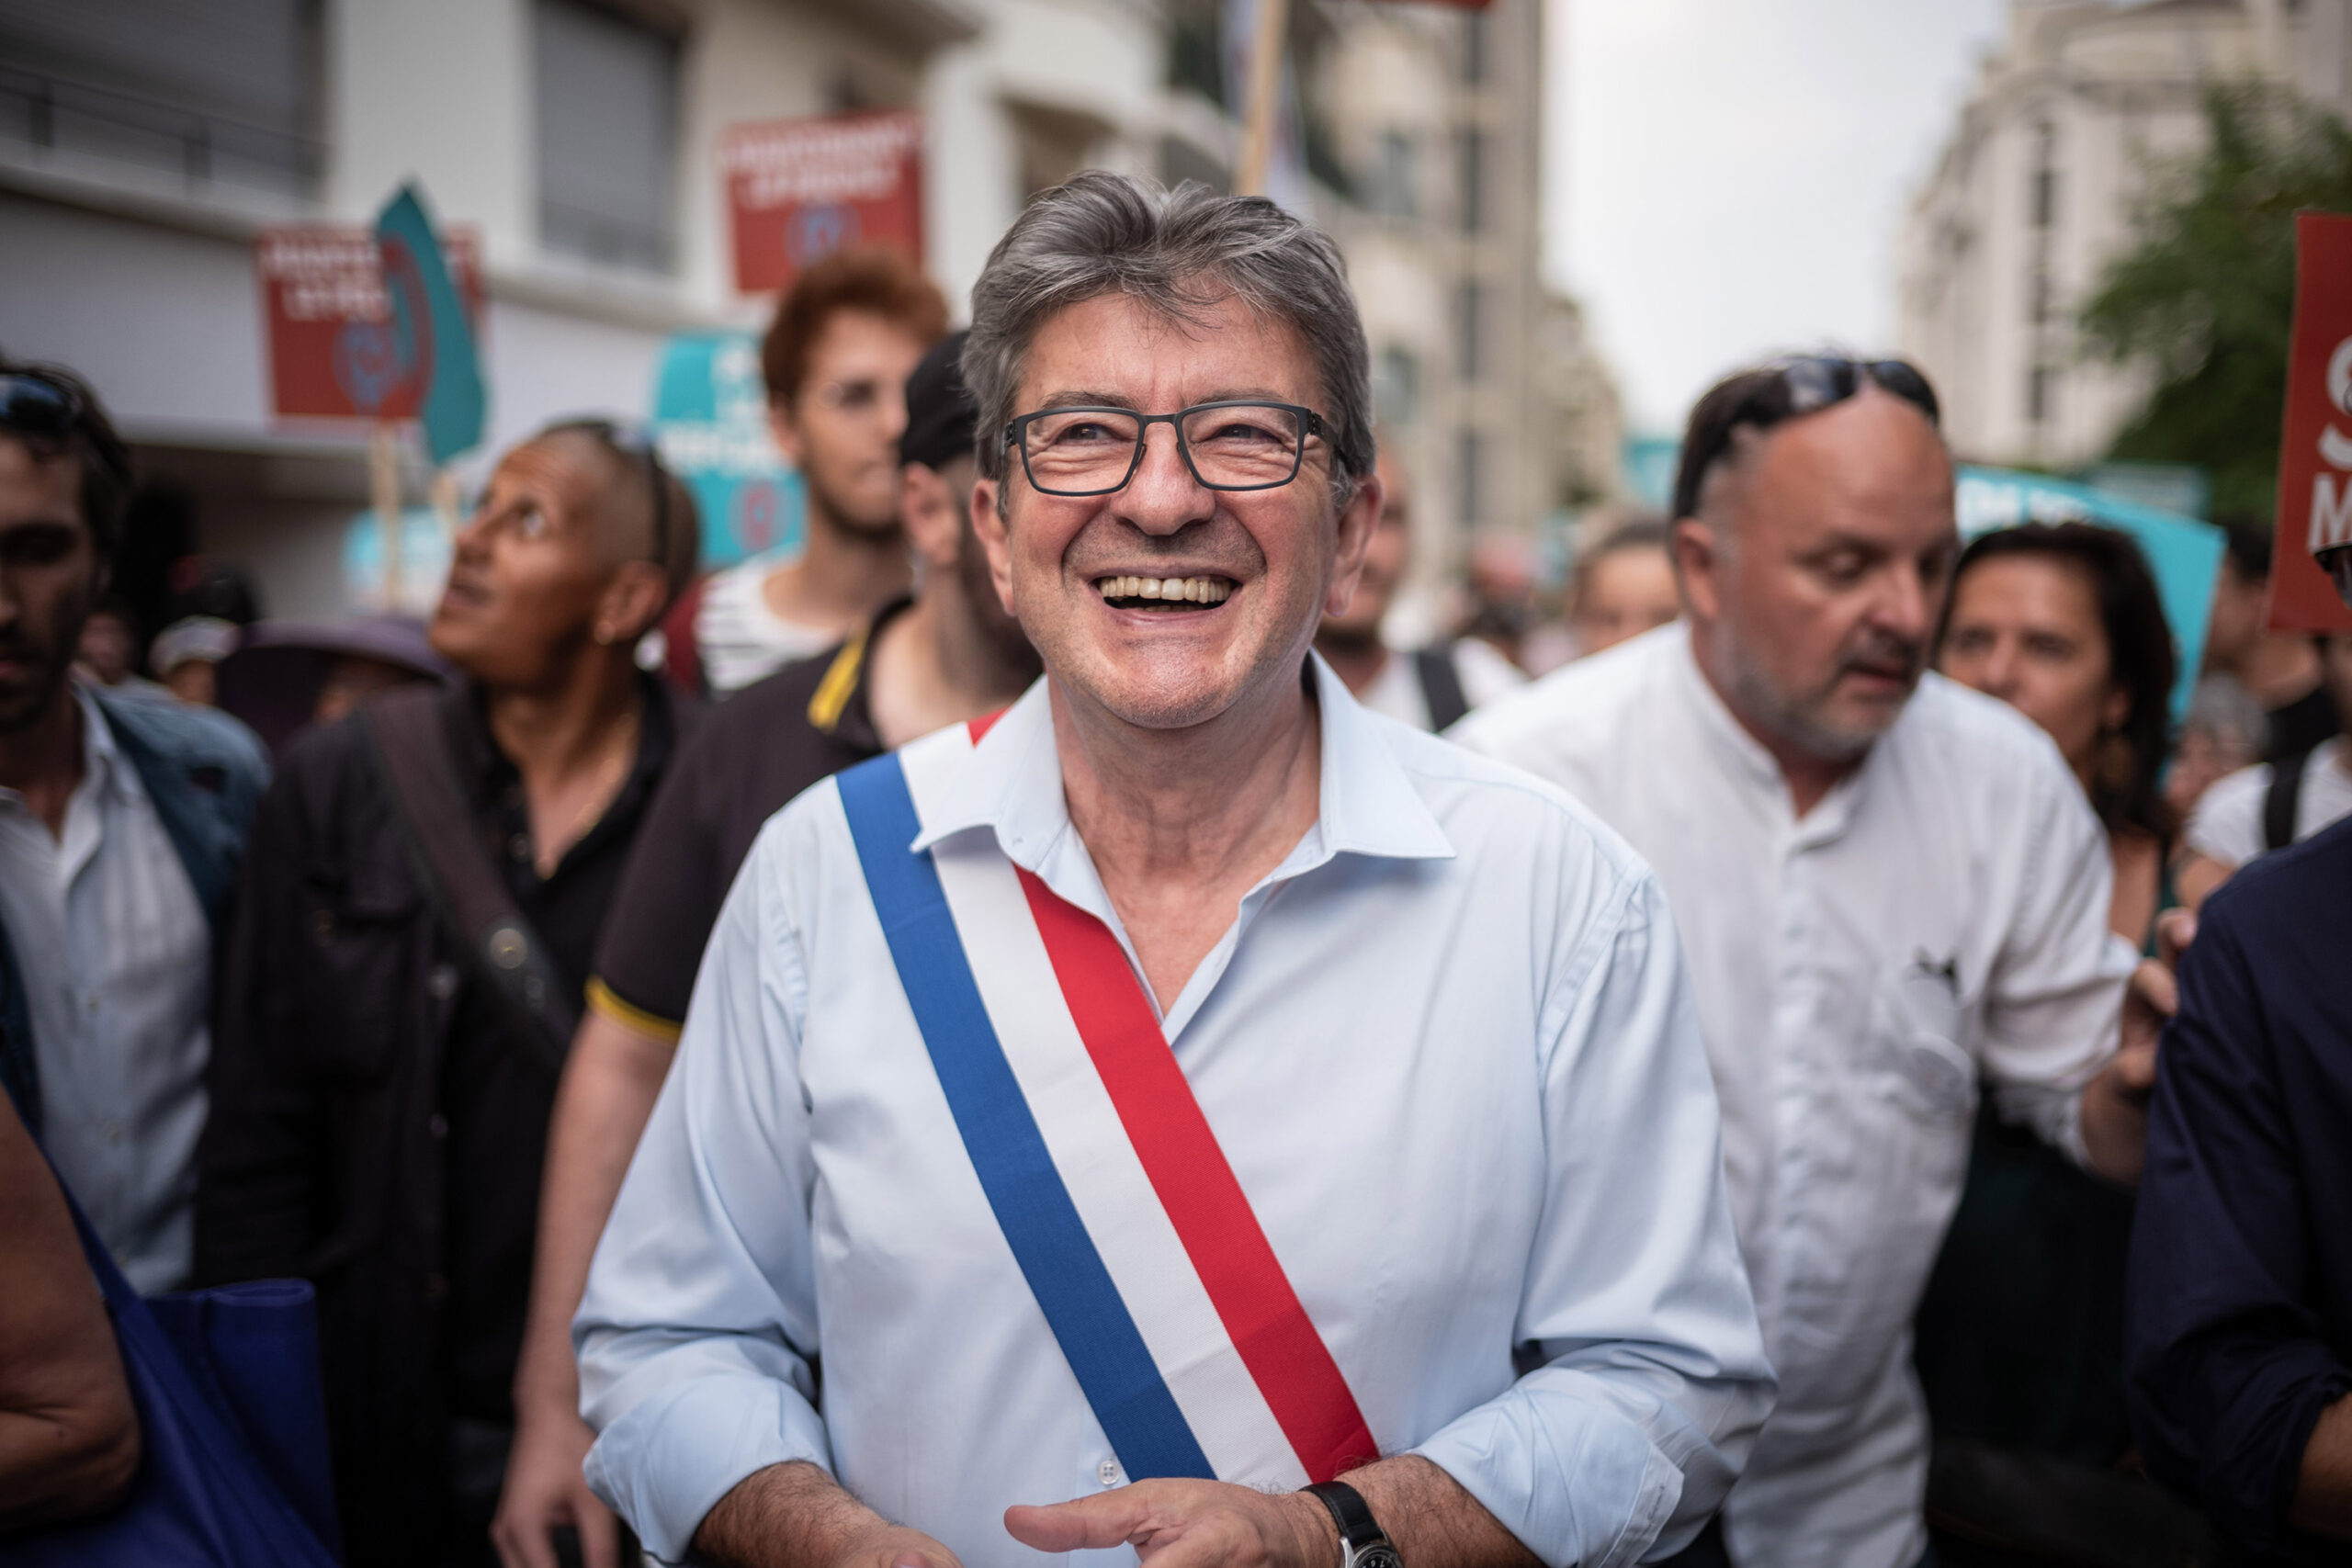 JLM sourire  scaled